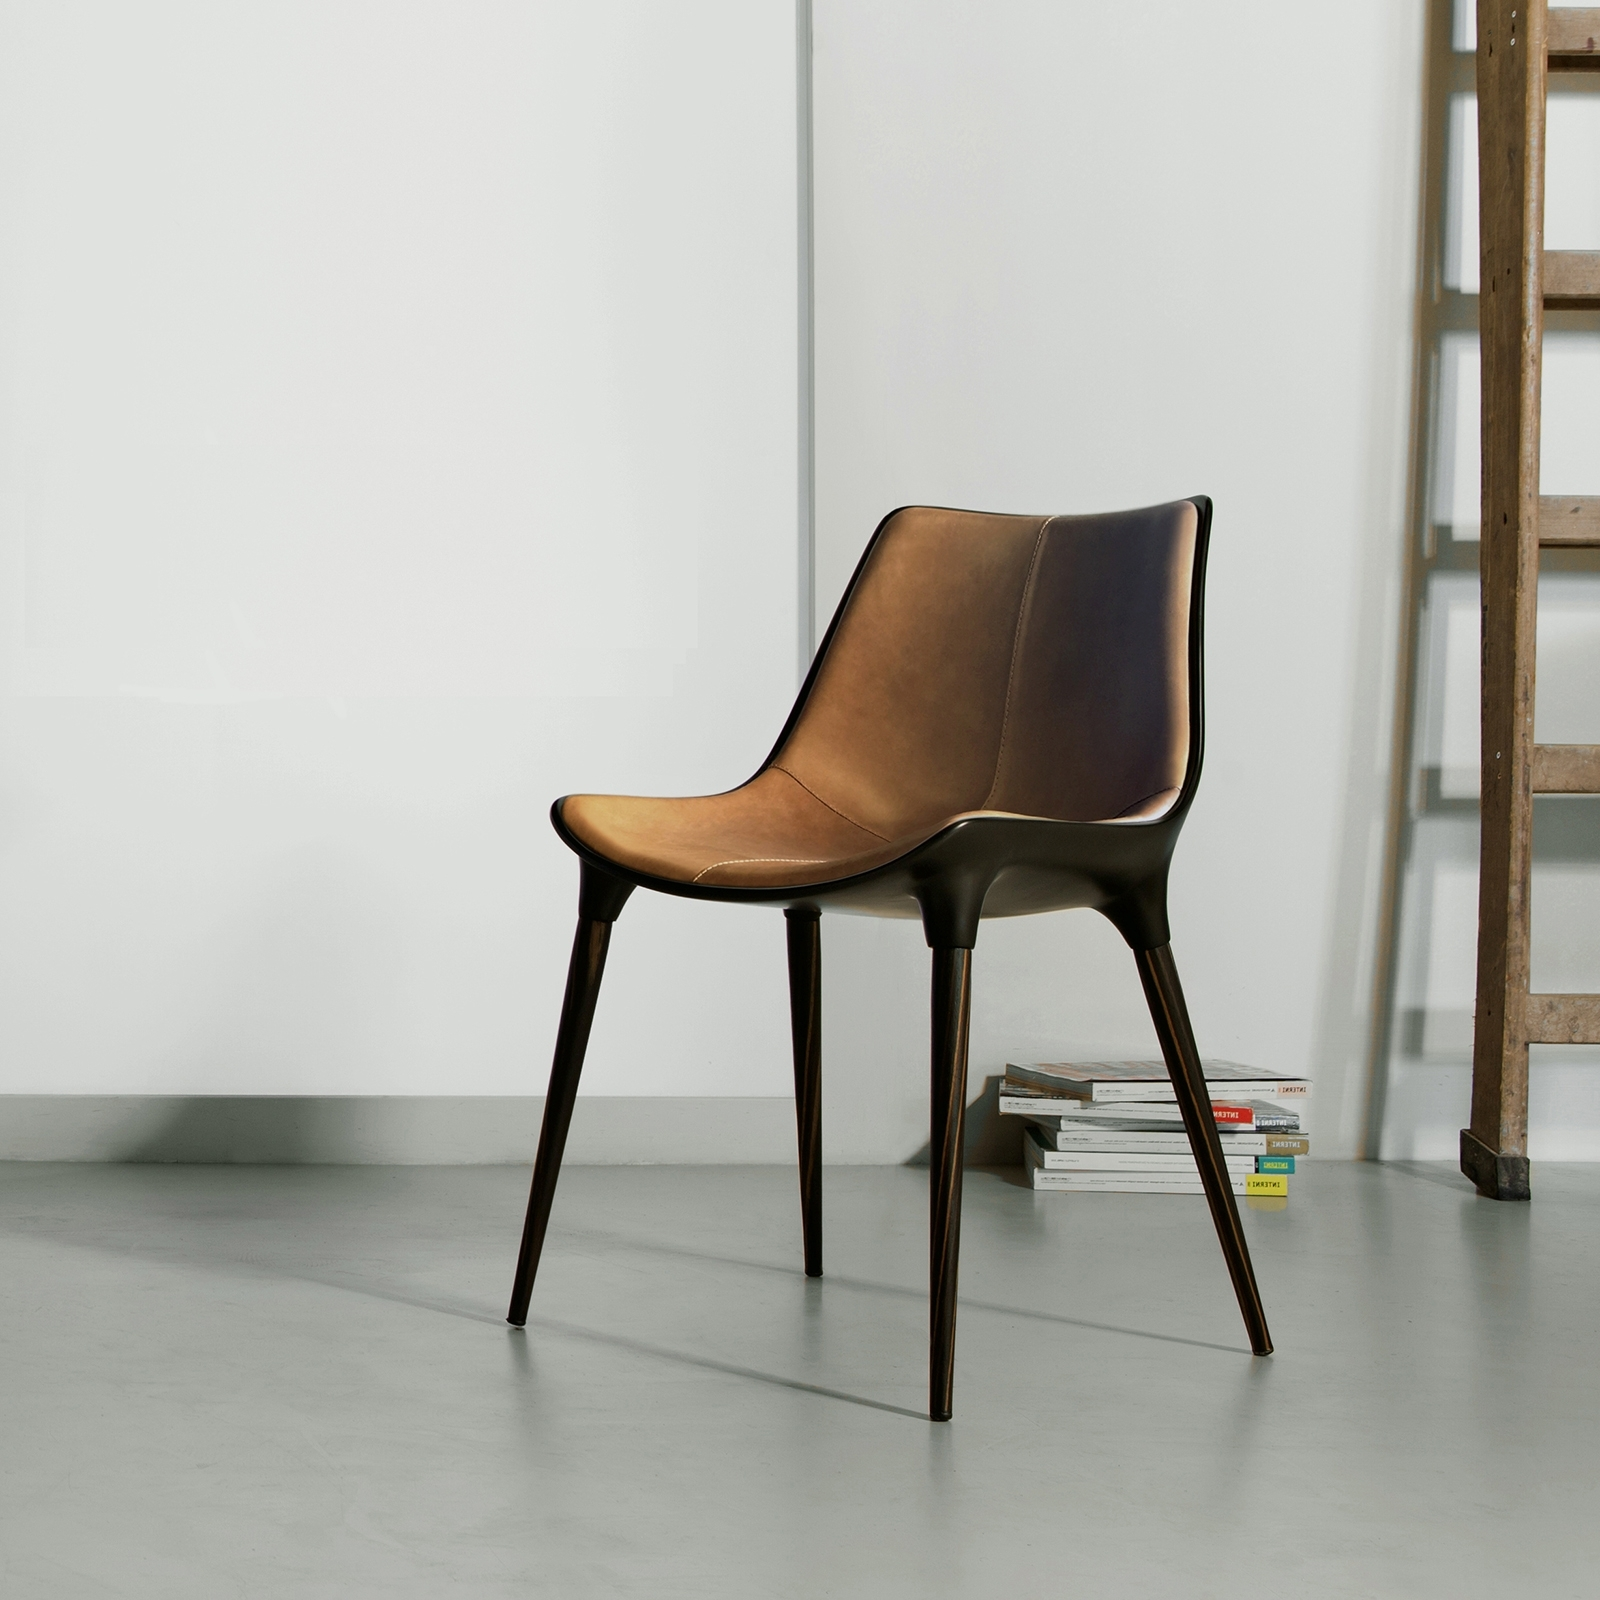 2018 Langham Dining Chair In Leather – Bimma Loft Regarding Dining Chairs (Gallery 11 of 25)